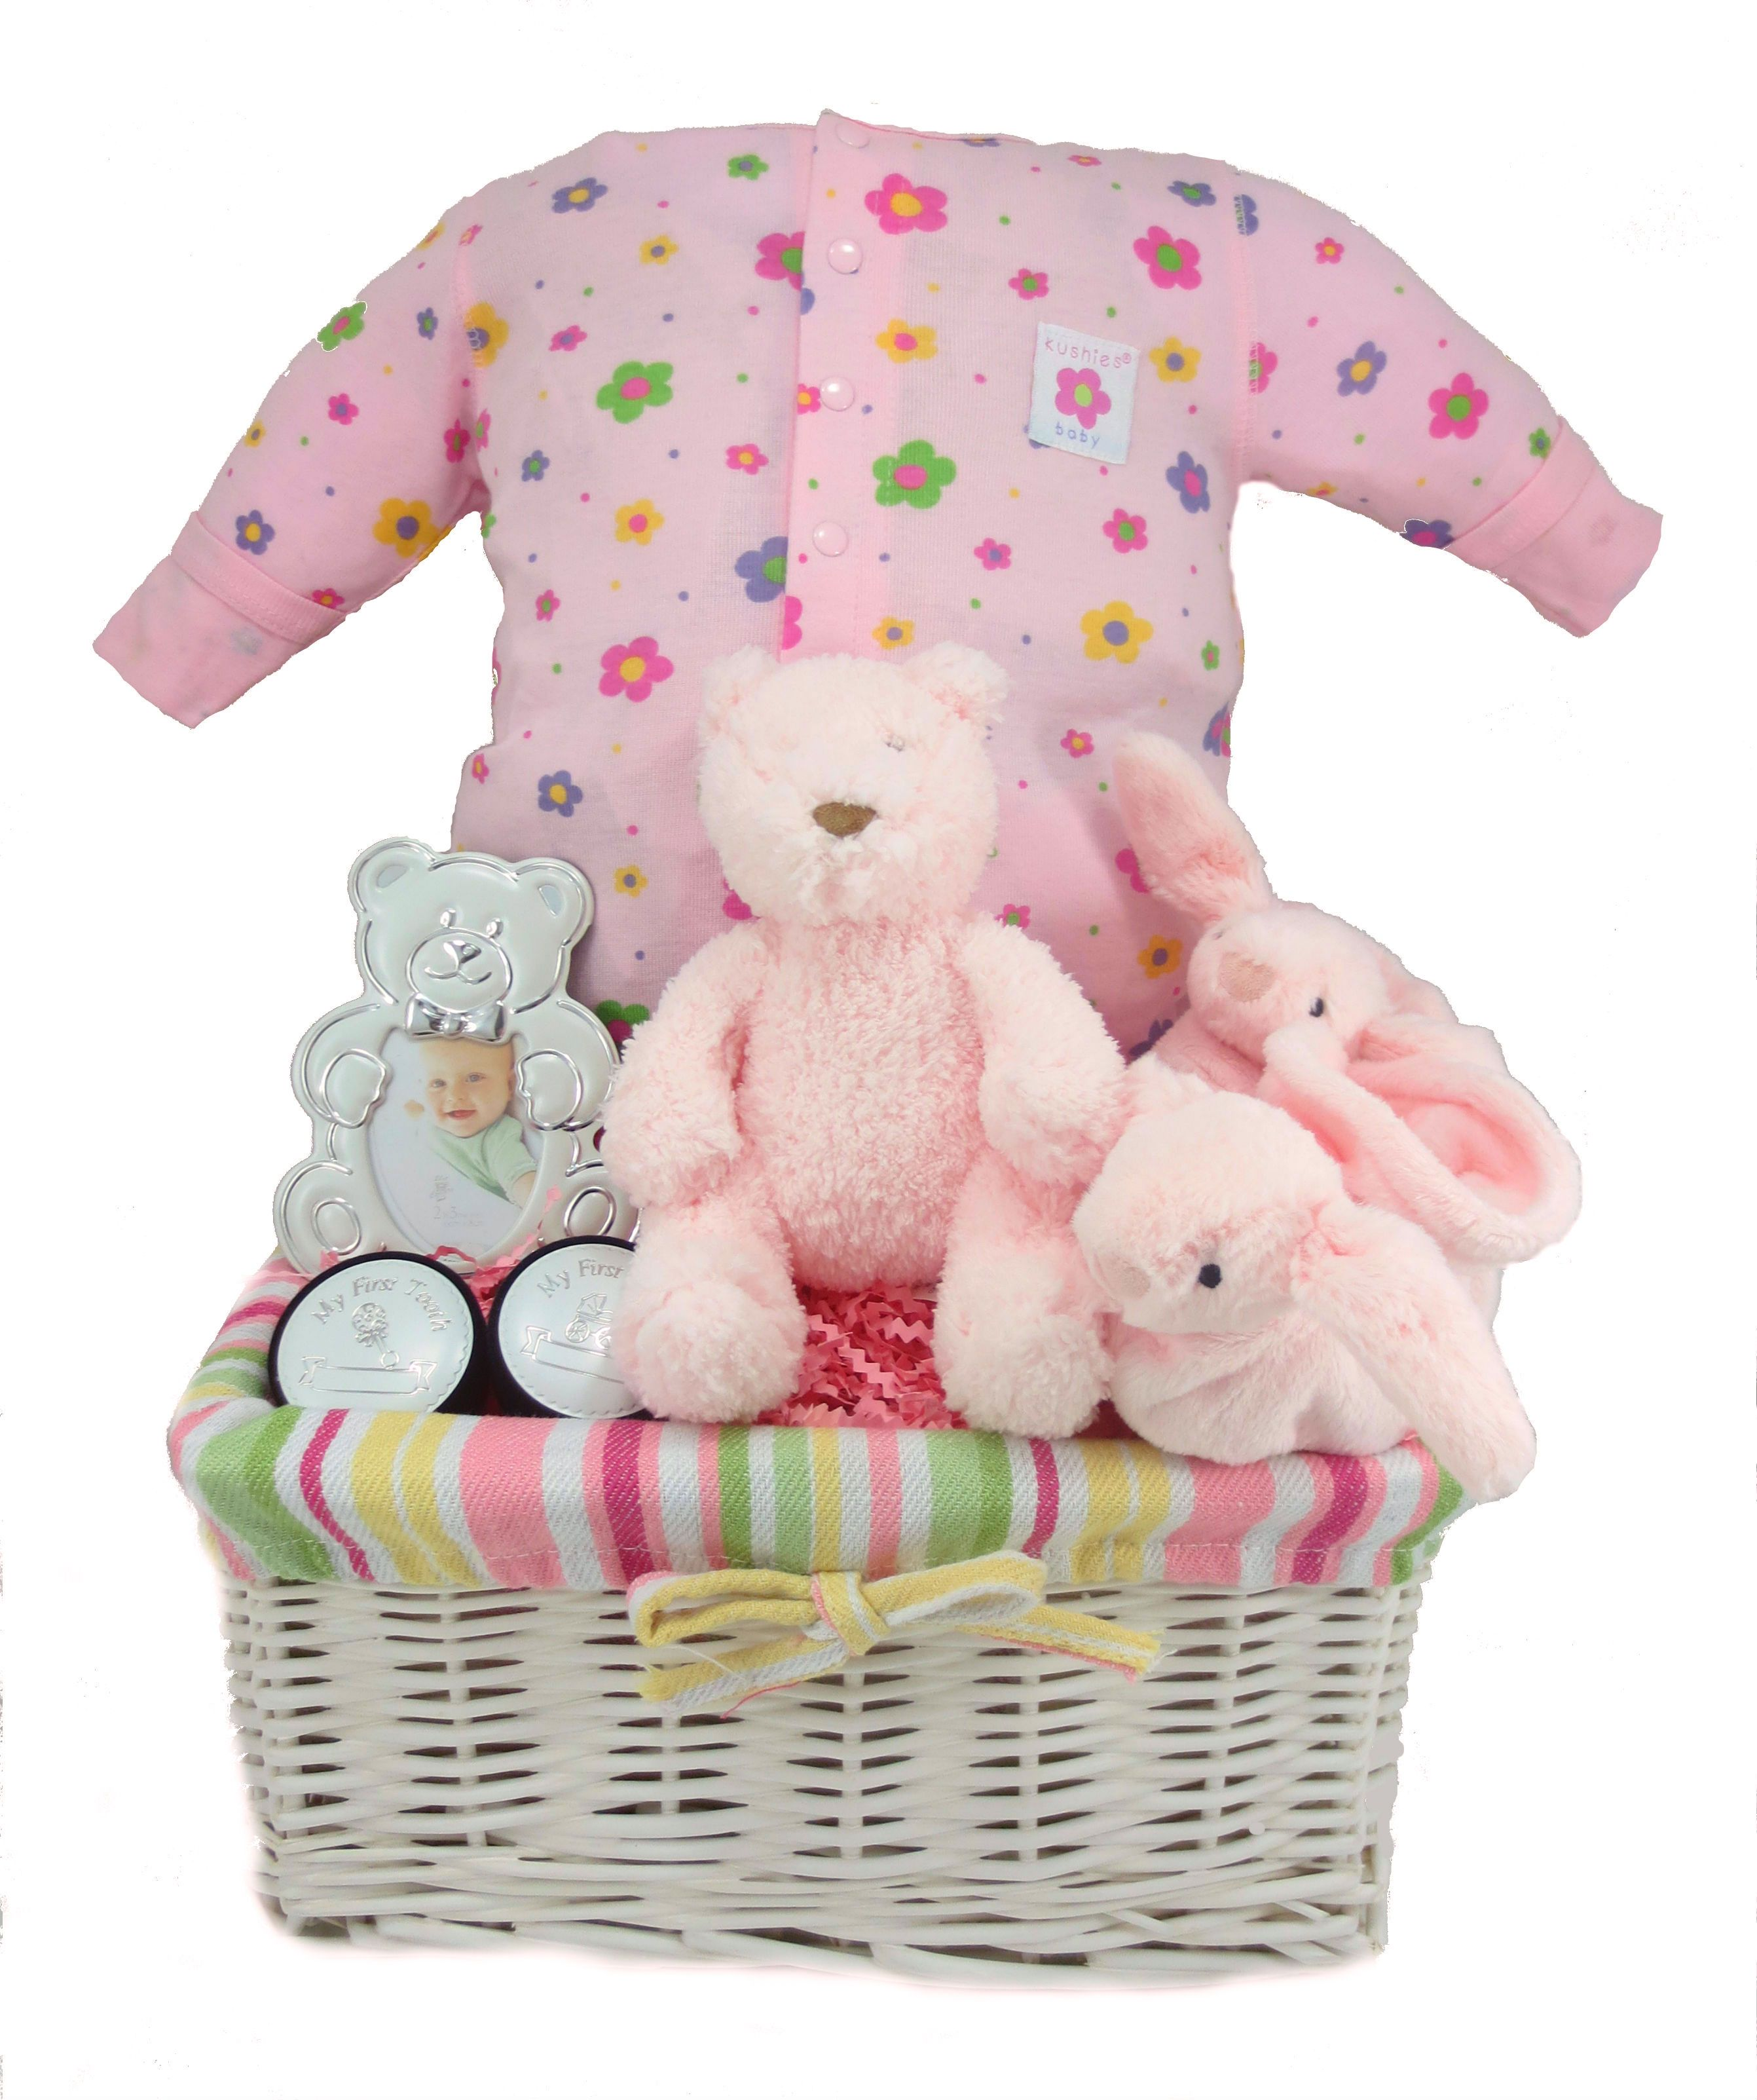 Pretty in Pink Baby Gift Basket